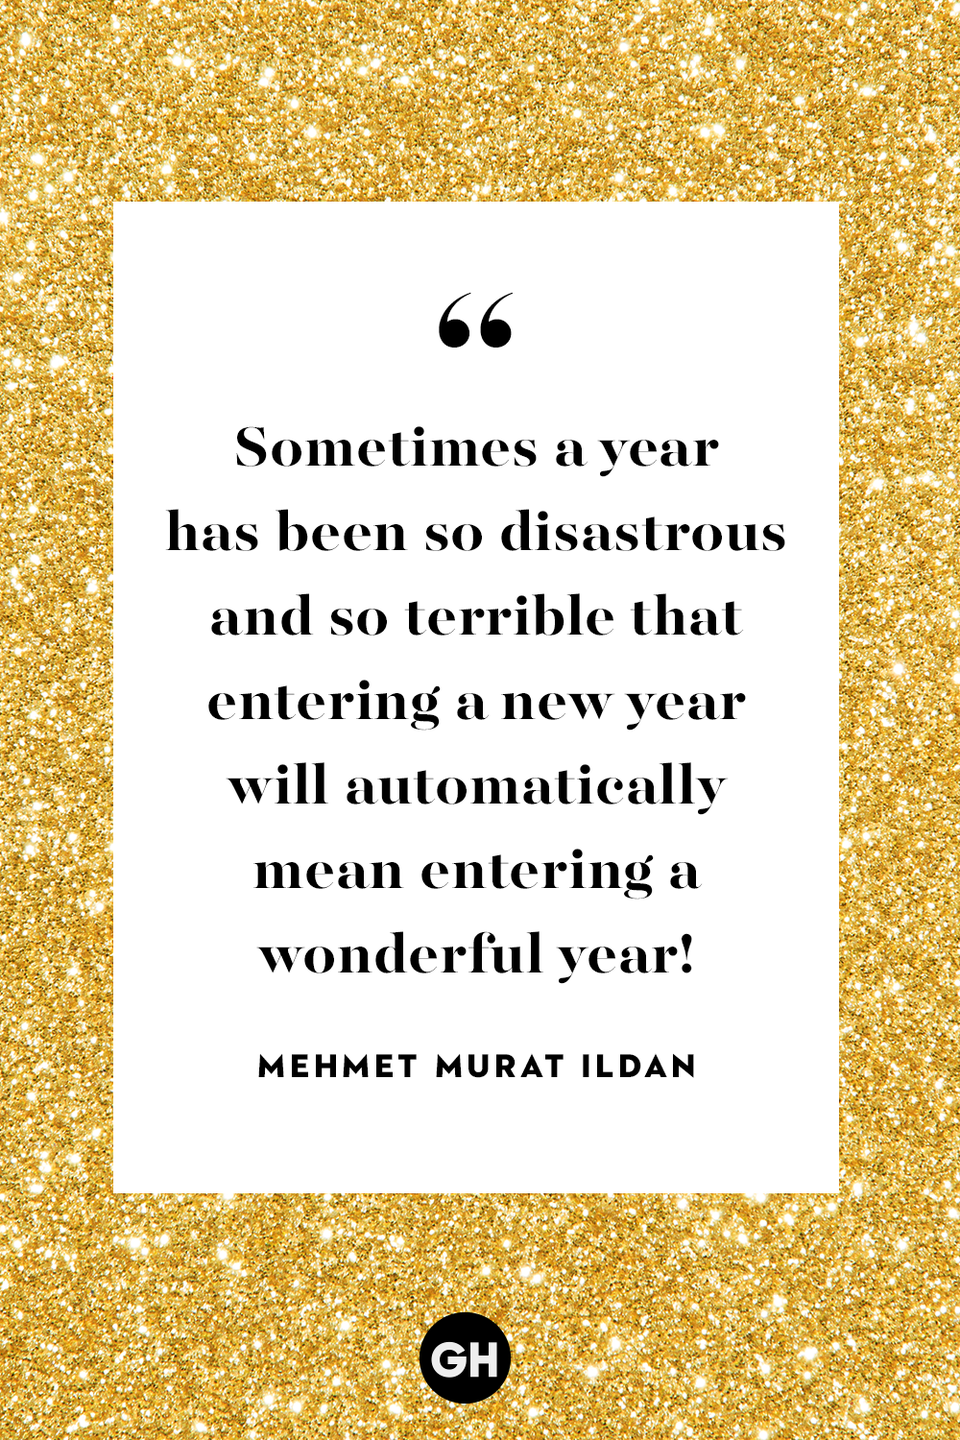 <p>Sometimes a year has been so disastrous and so terrible that entering a new year will automatically mean entering a wonderful year!</p>